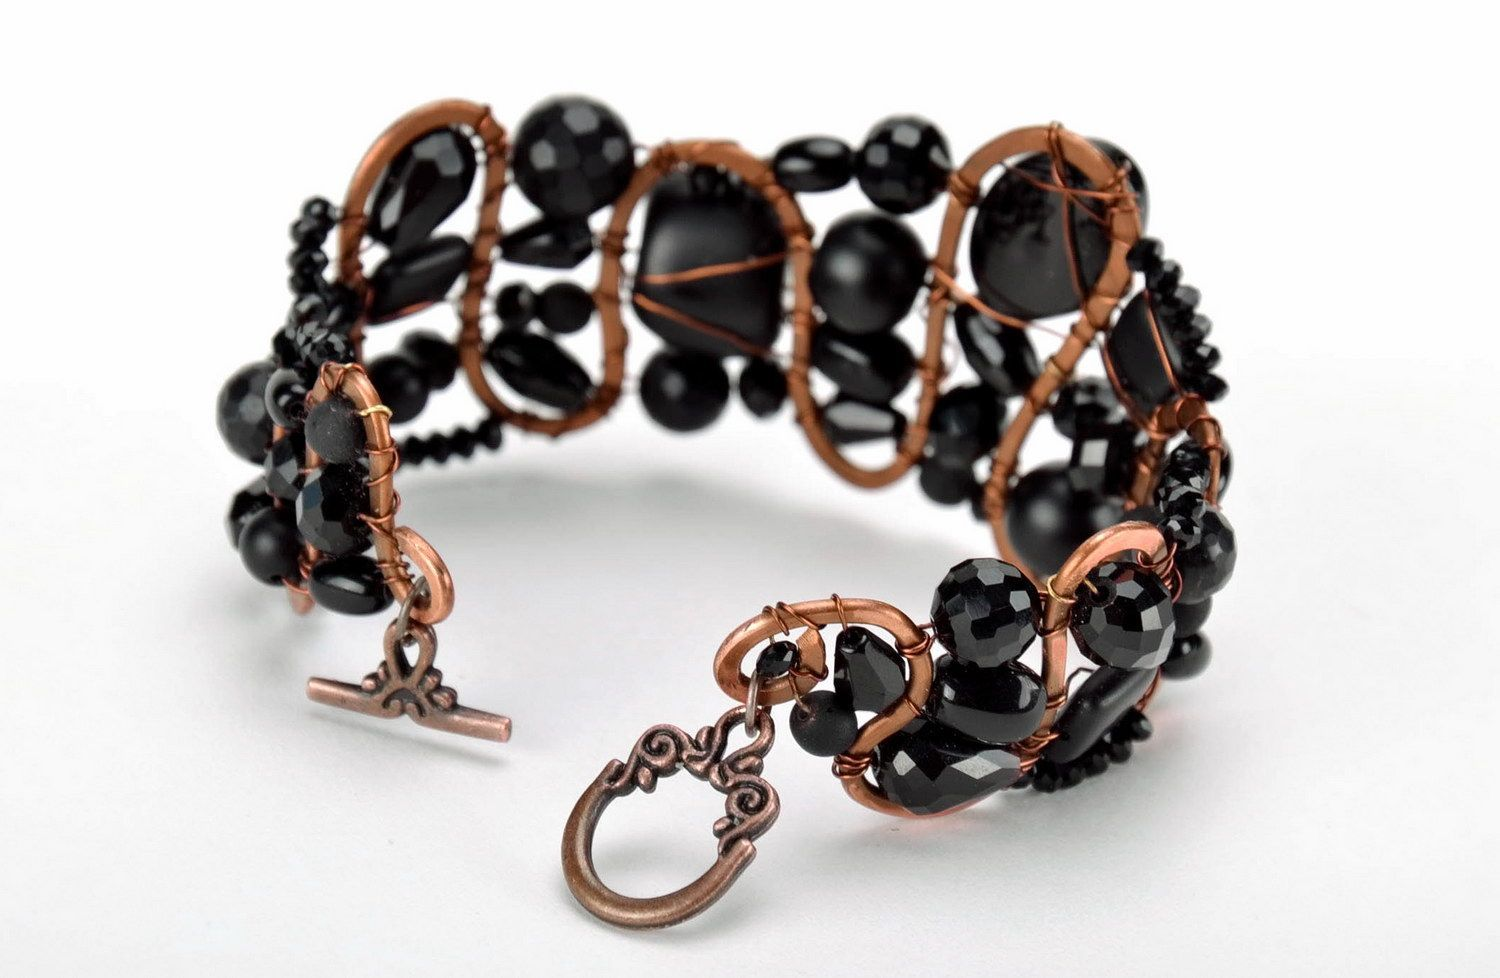 gemstone bracelets Copper bracelet with onyx, agate and crystal - MADEheart.com